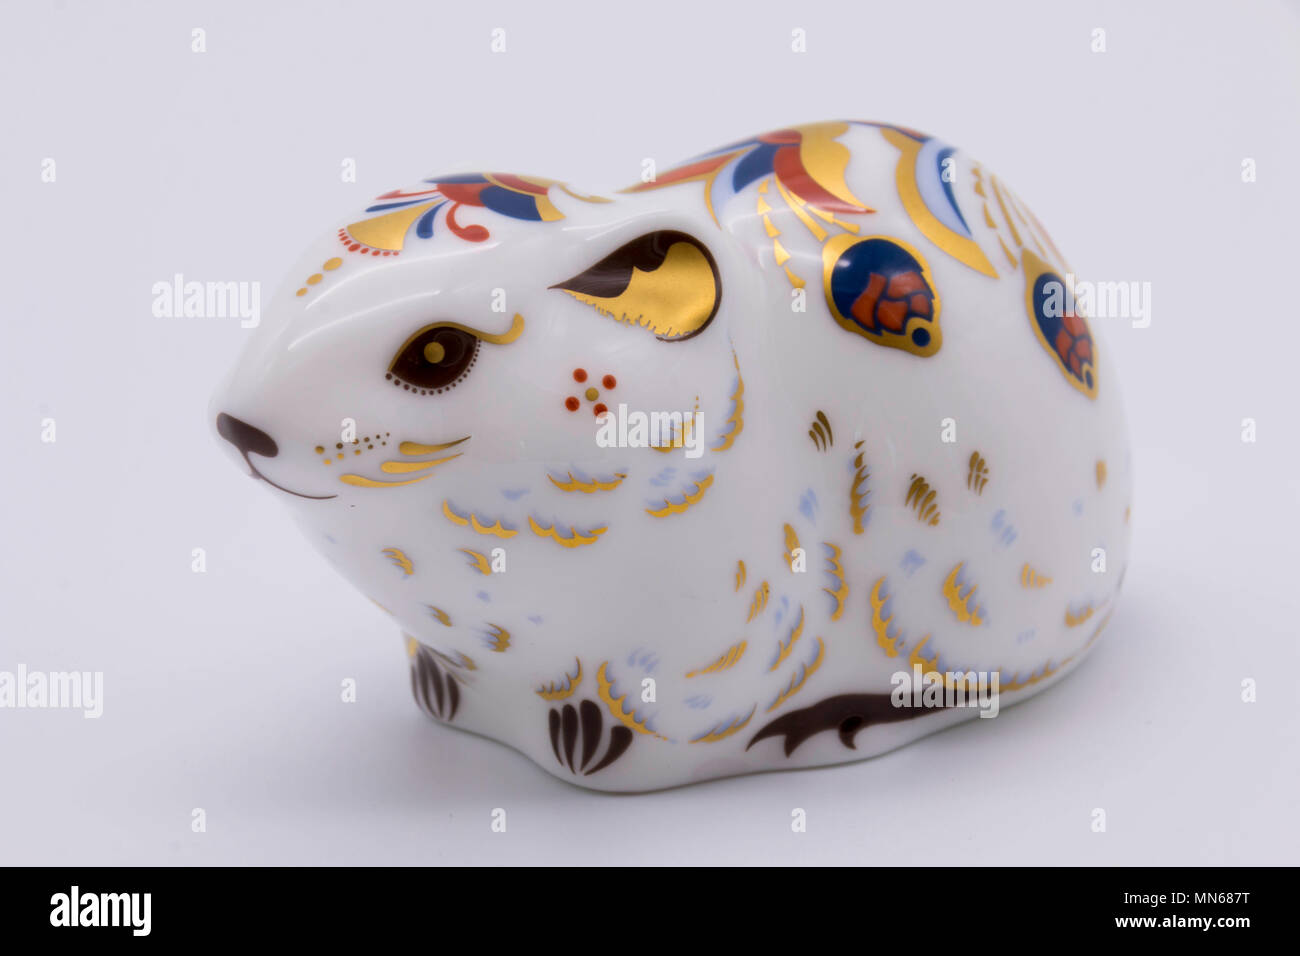 Royal Crown Derby bone china paperweight of a bank vole uk - Stock Image